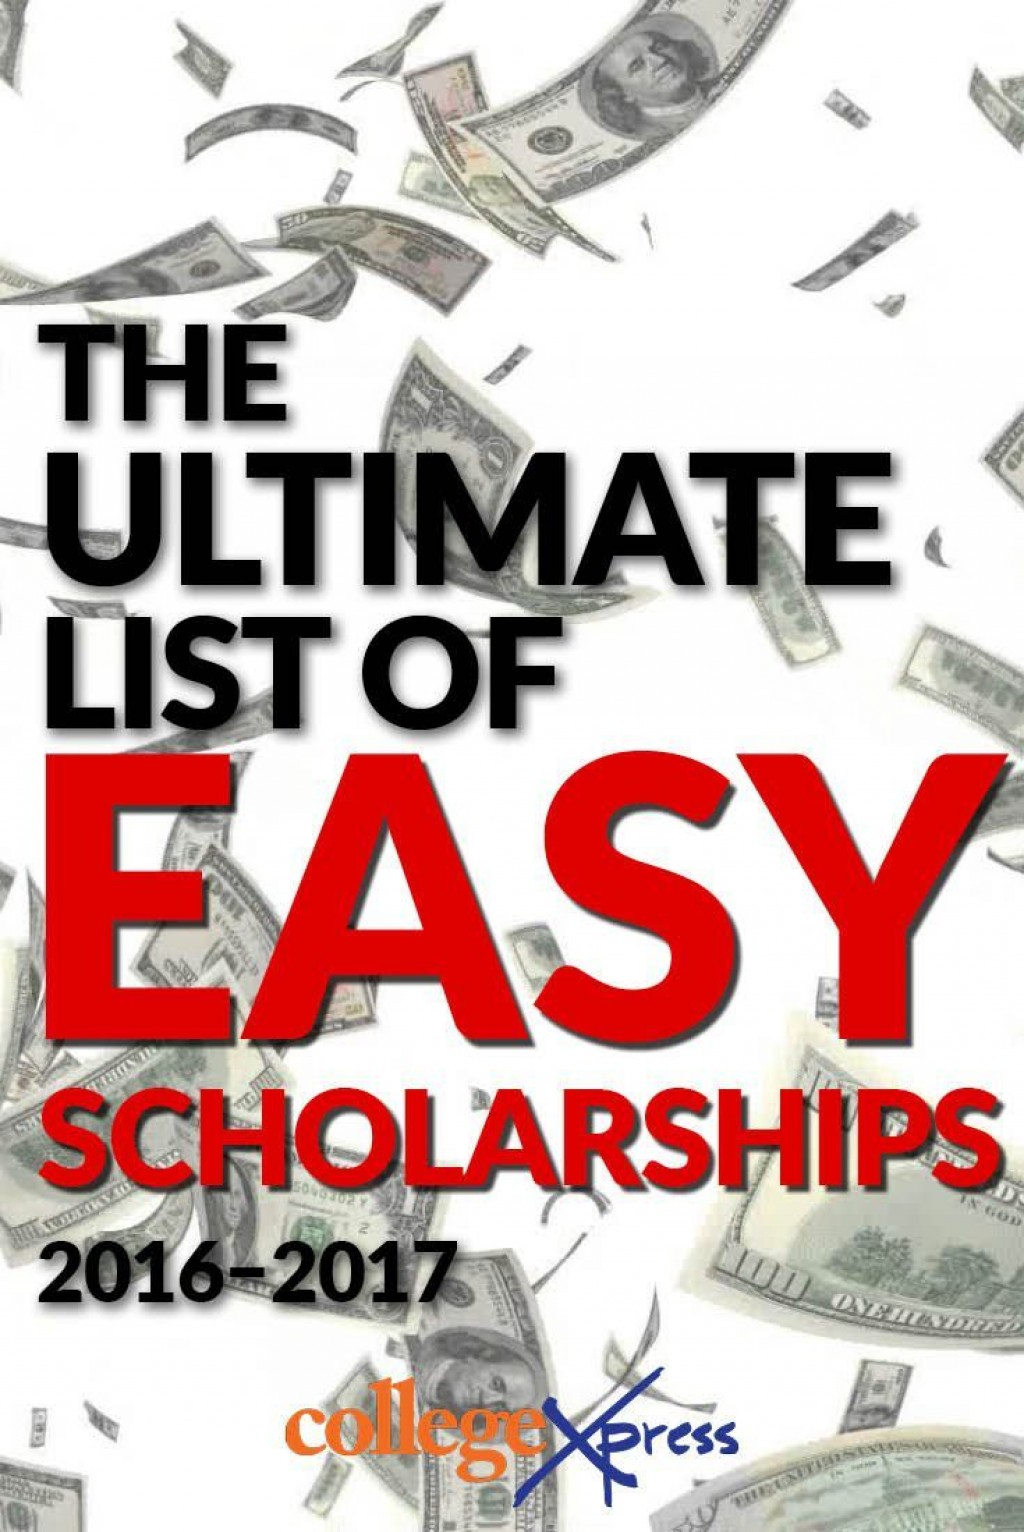 013 Essay Example Easy Scholarships Striking No 2019 2018 Large